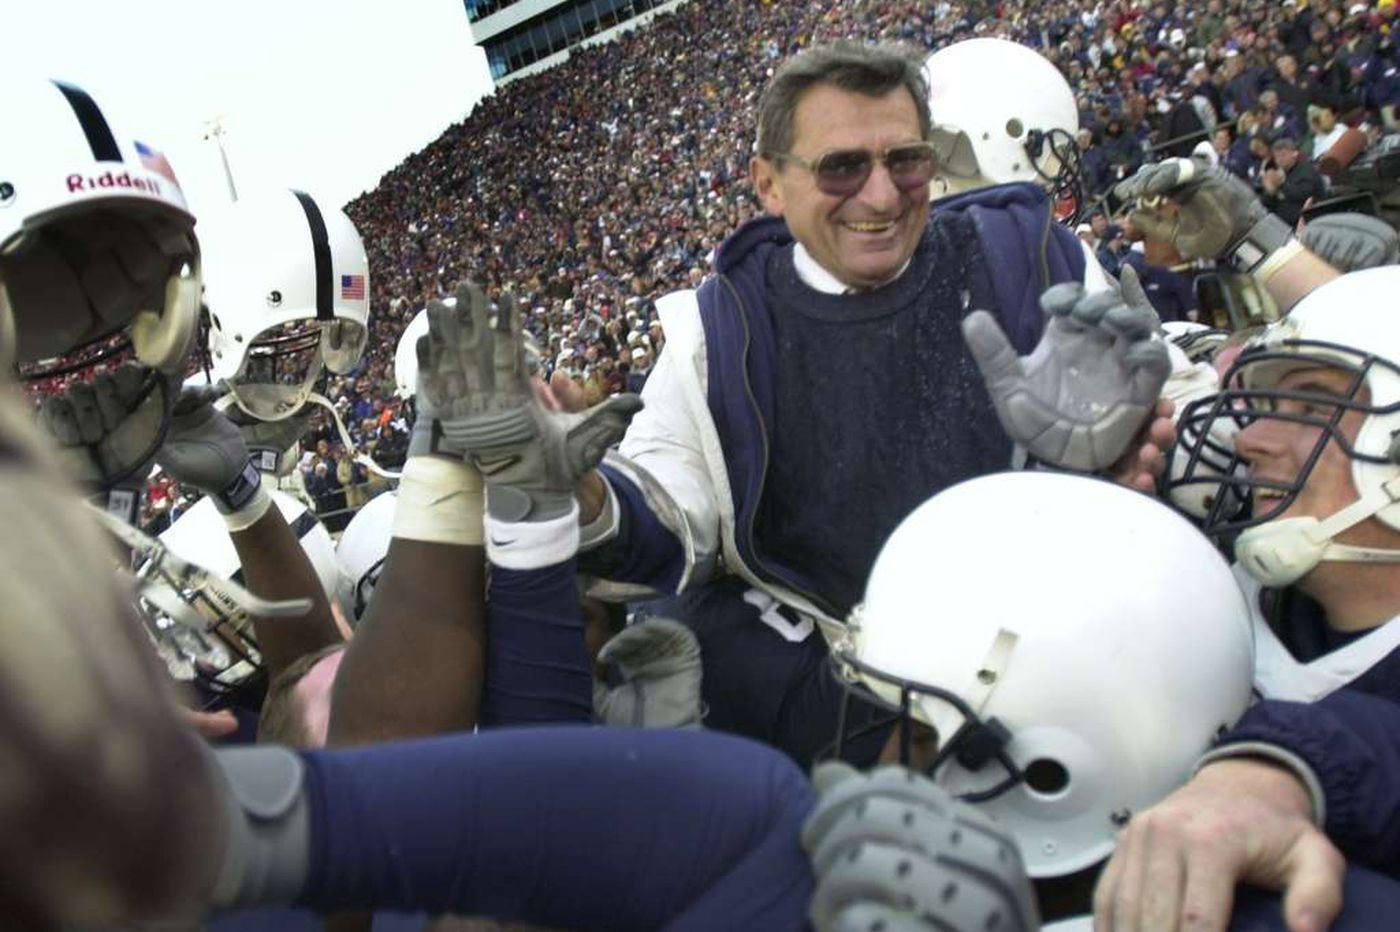 NCAA said in talks over sanctions against Penn State